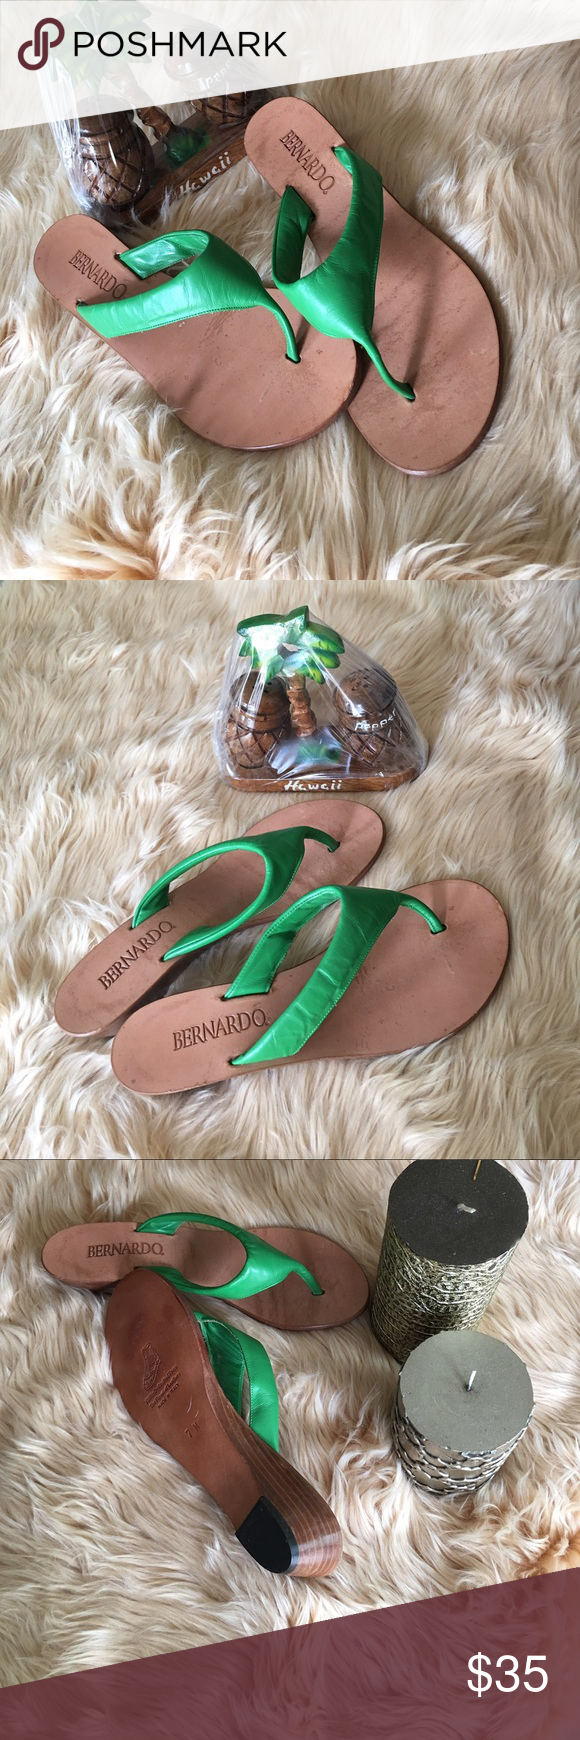 """Bernardo Wedge Sandal Pre-loved. Worn once. Skillfully crafted from the finest of leathers.  Leather sole Heel measures approximately 1.5"""" Leather sandal featuring thong strap. Size 7M. Made in Italy. Bernardo Shoes Wedges"""